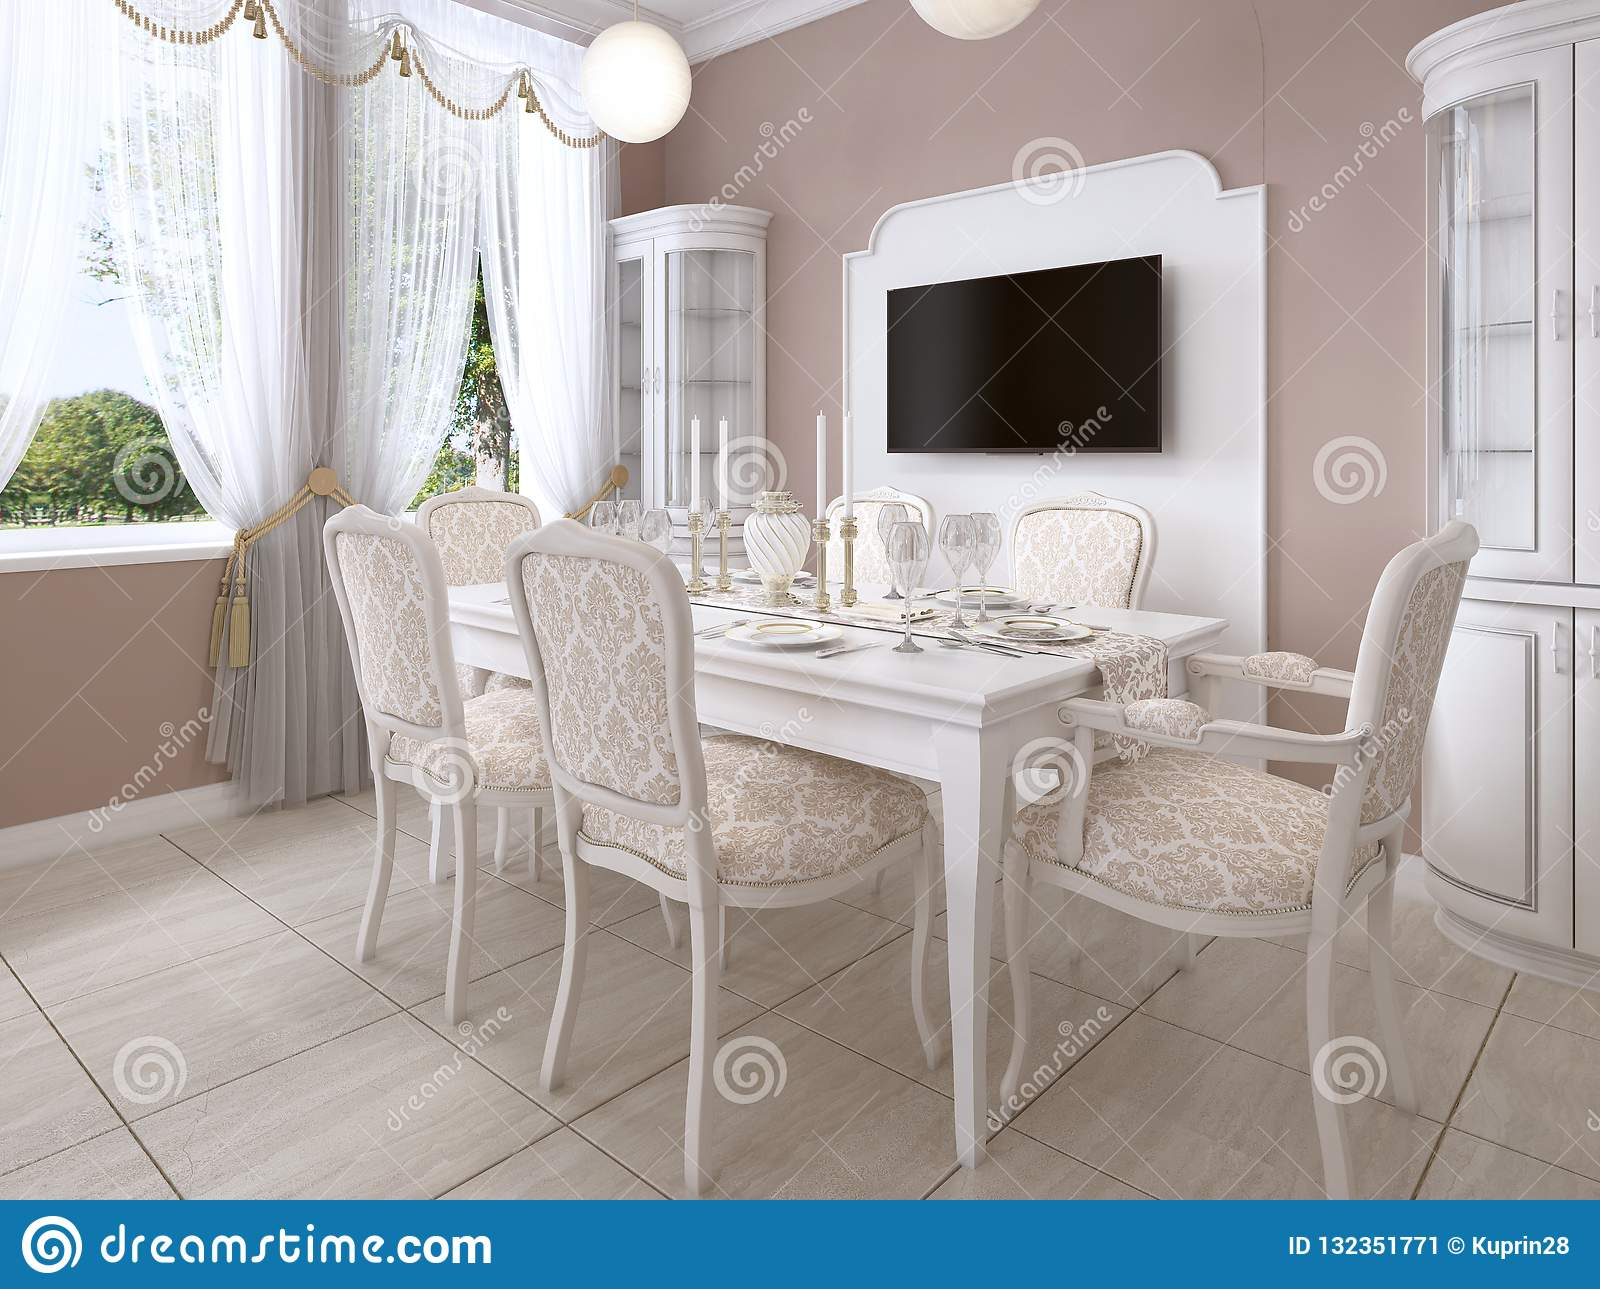 Excellent Dining Room With White Table And Chairs For Six People With Ocoug Best Dining Table And Chair Ideas Images Ocougorg